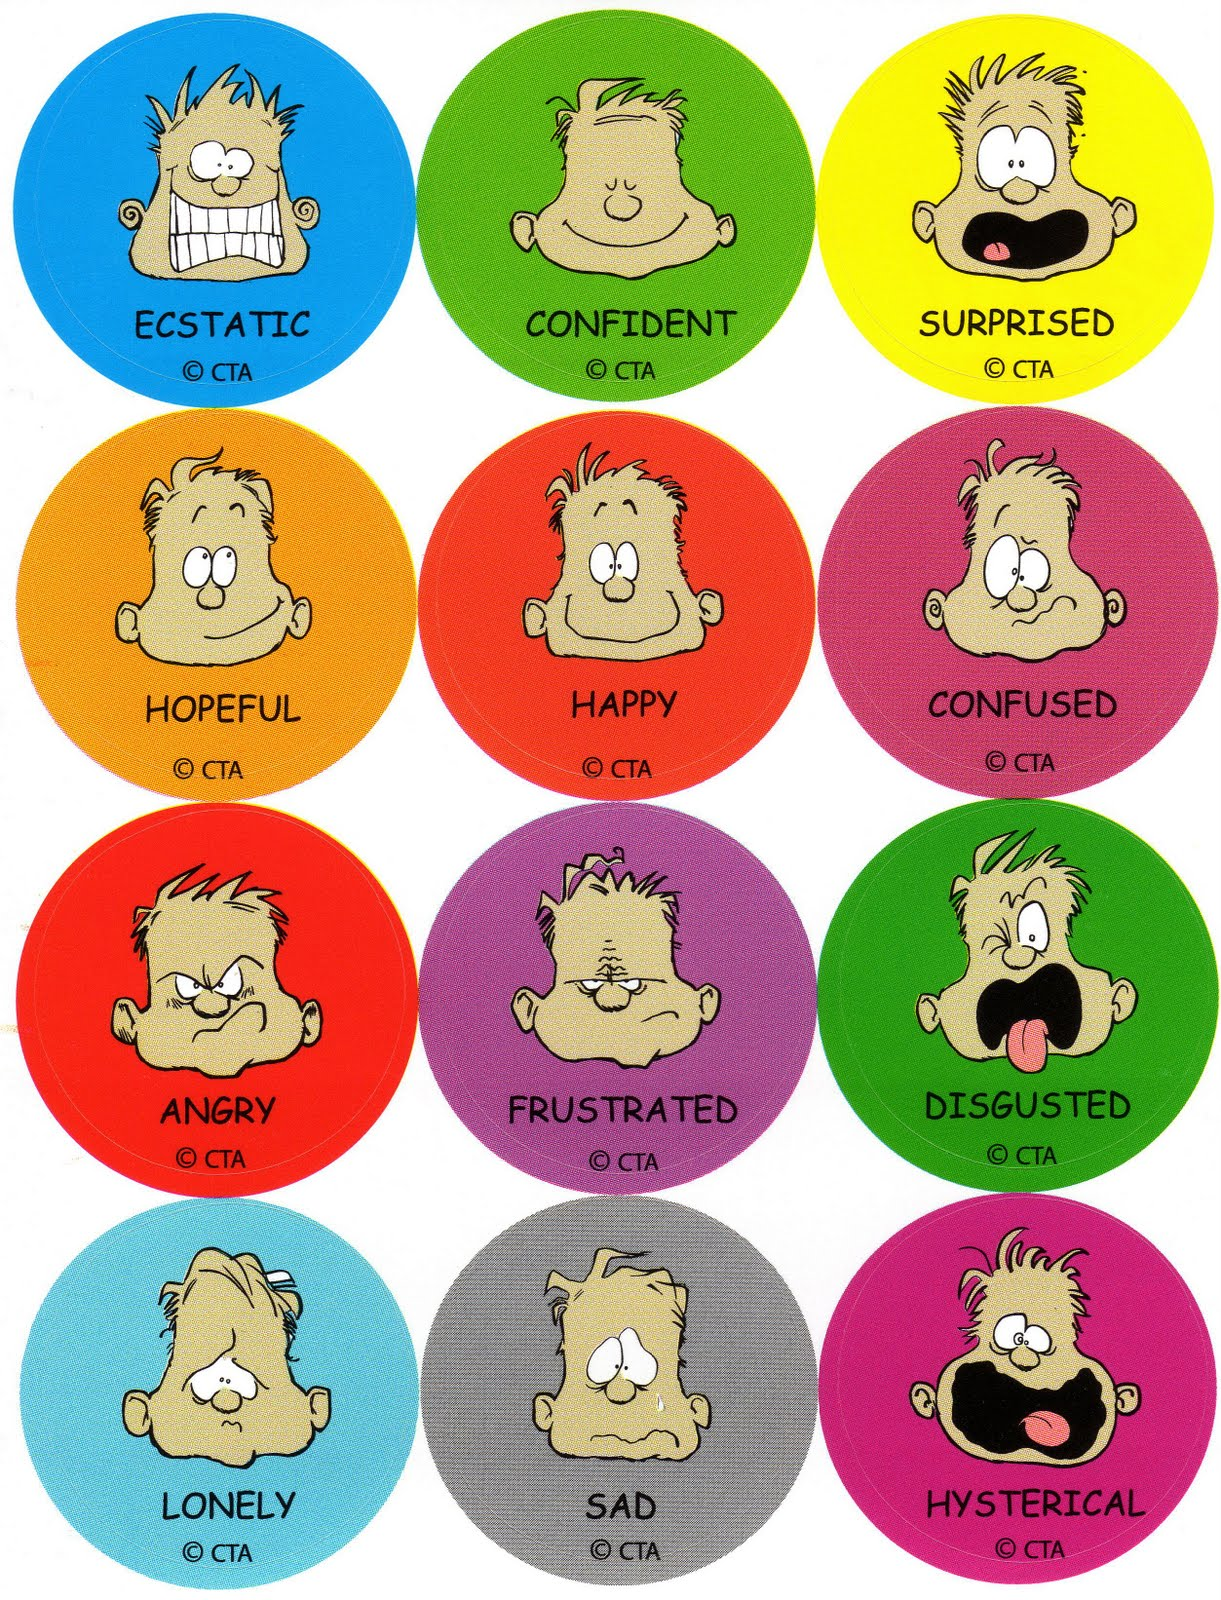 Emotions Faces For Kids   Hot Clouds Com